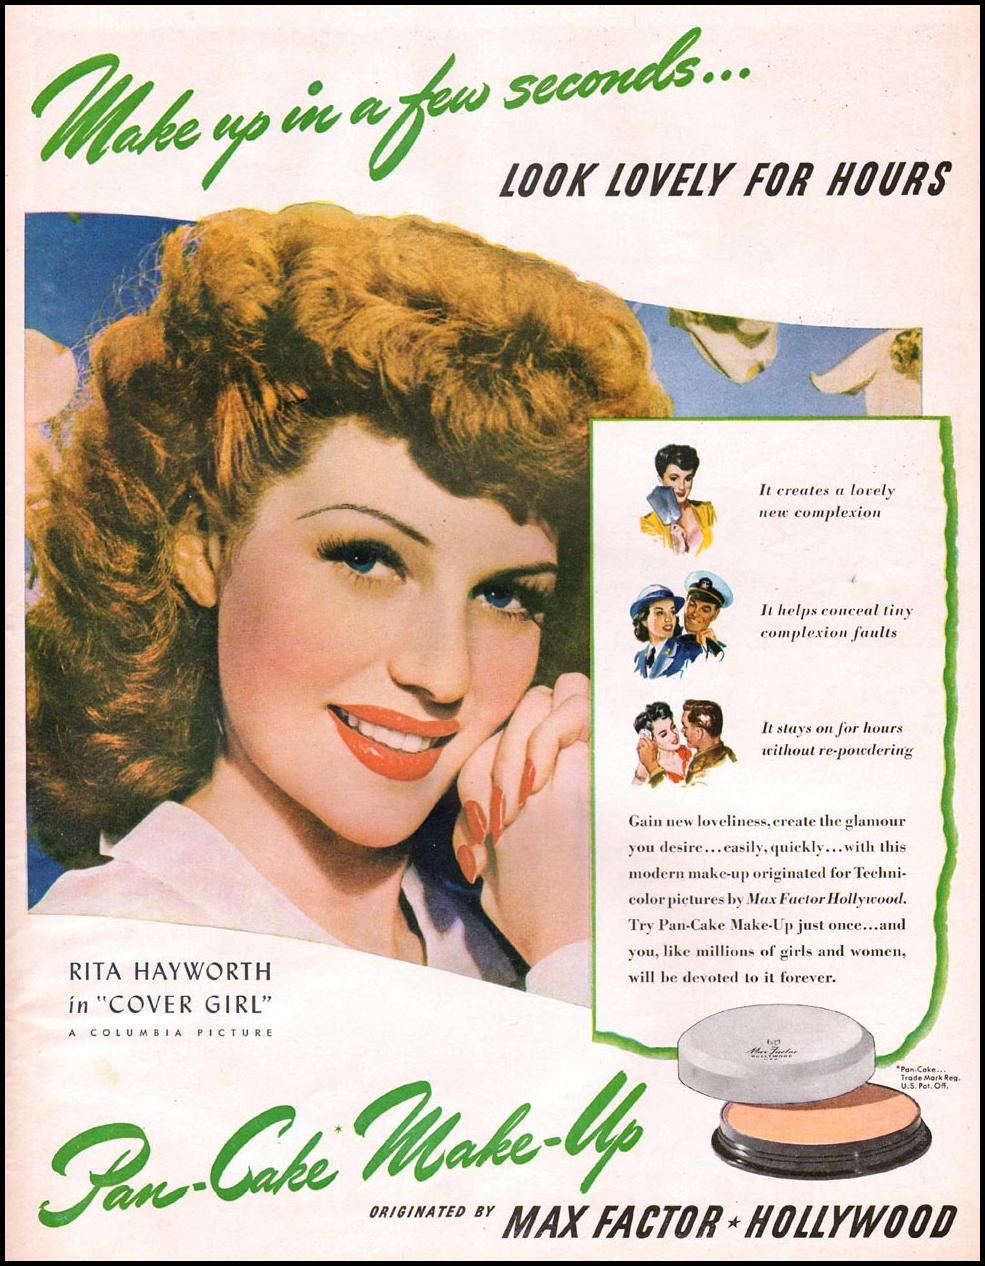 MAX FACTOR PAN-CAKE MAKE-UP LIFE 10/11/1943 p. 109